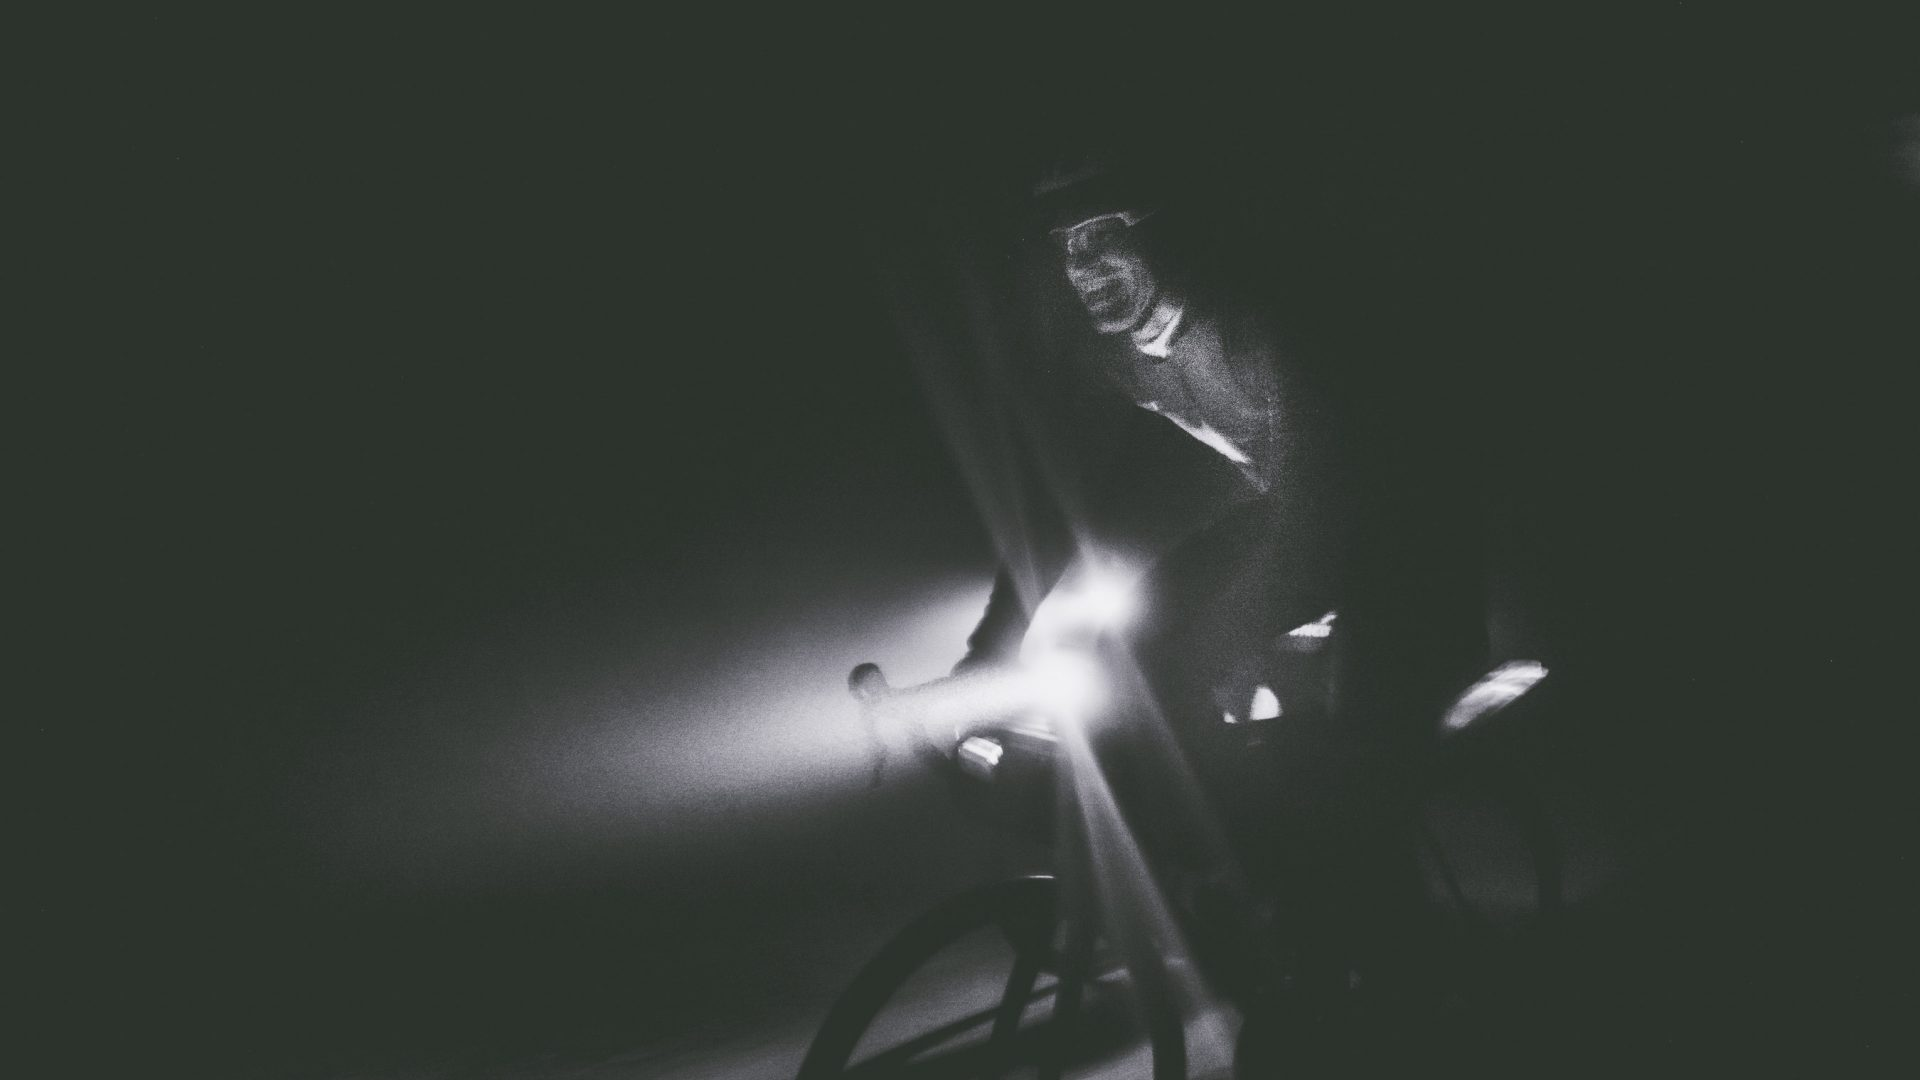 A bike rider can just be seen in the darkness.